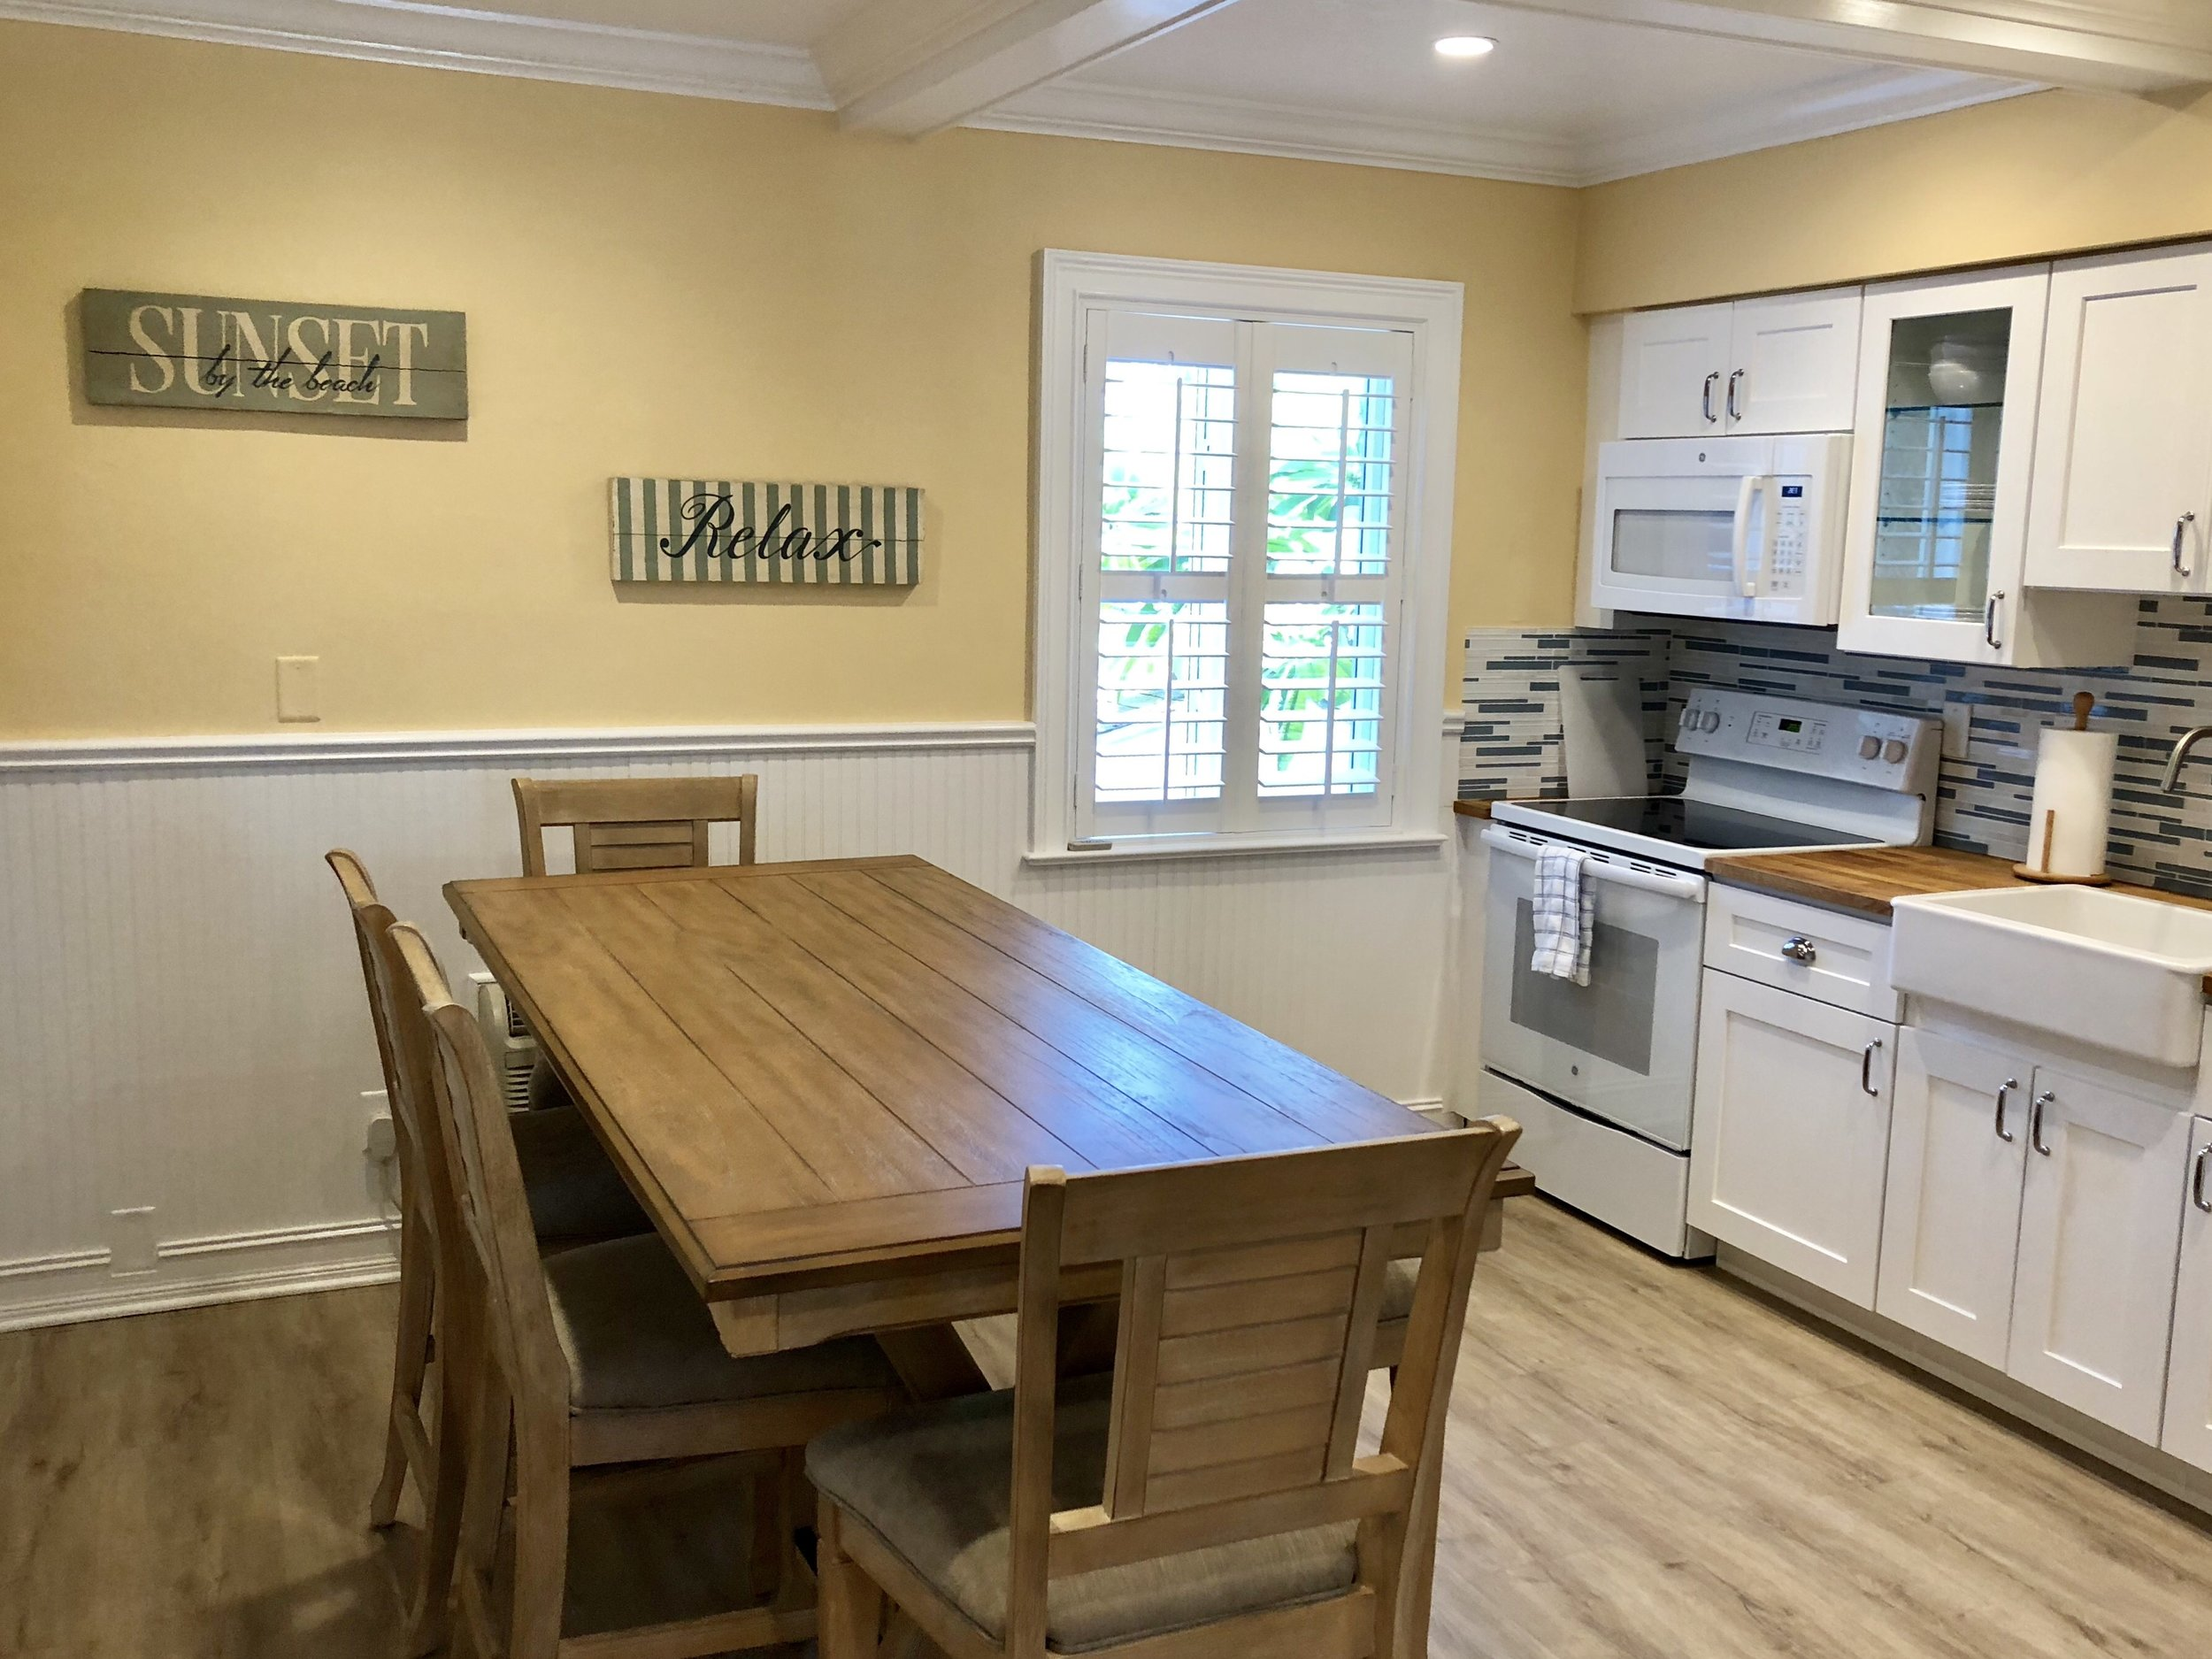 kitchen with table.jpeg